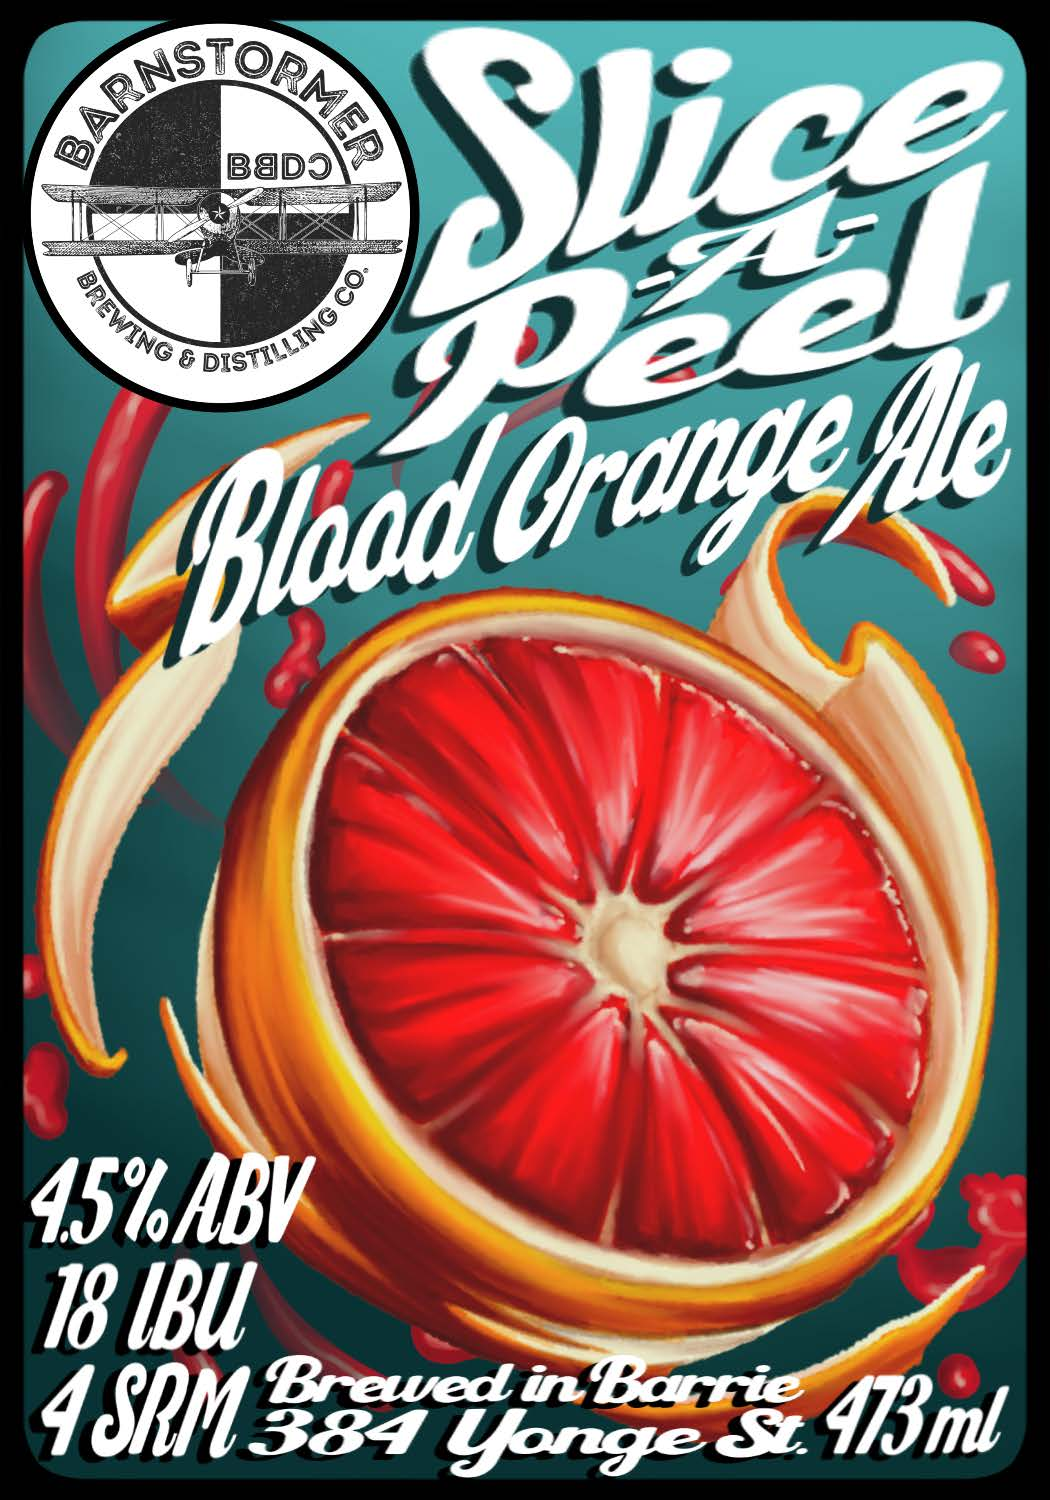 Slice-A-Peel Blood Orange Ale